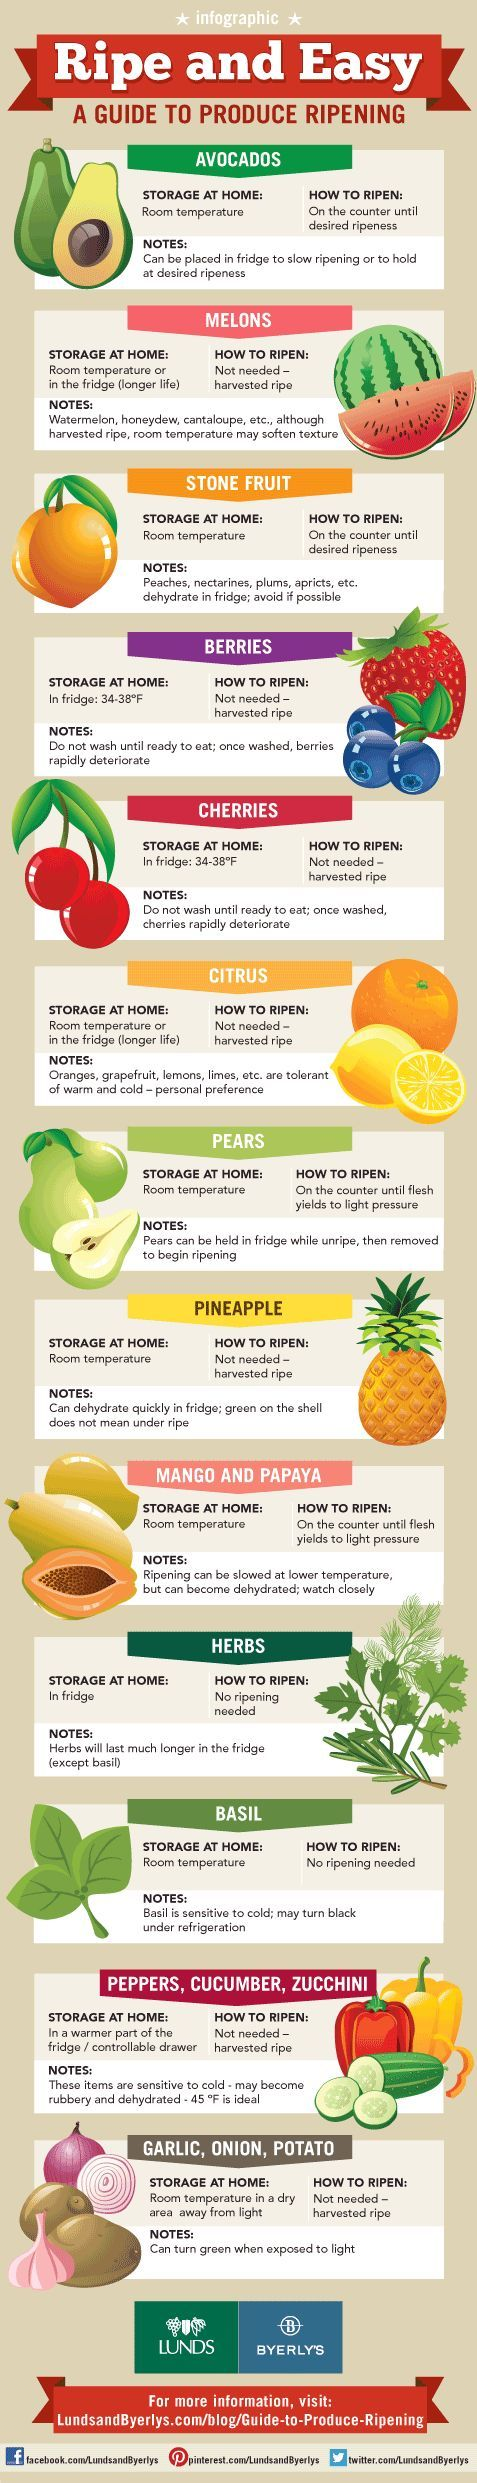 A GUIDE TO PRODUCE RIPENING CHART...  ~XOX  #MomAndSonCookingTeam